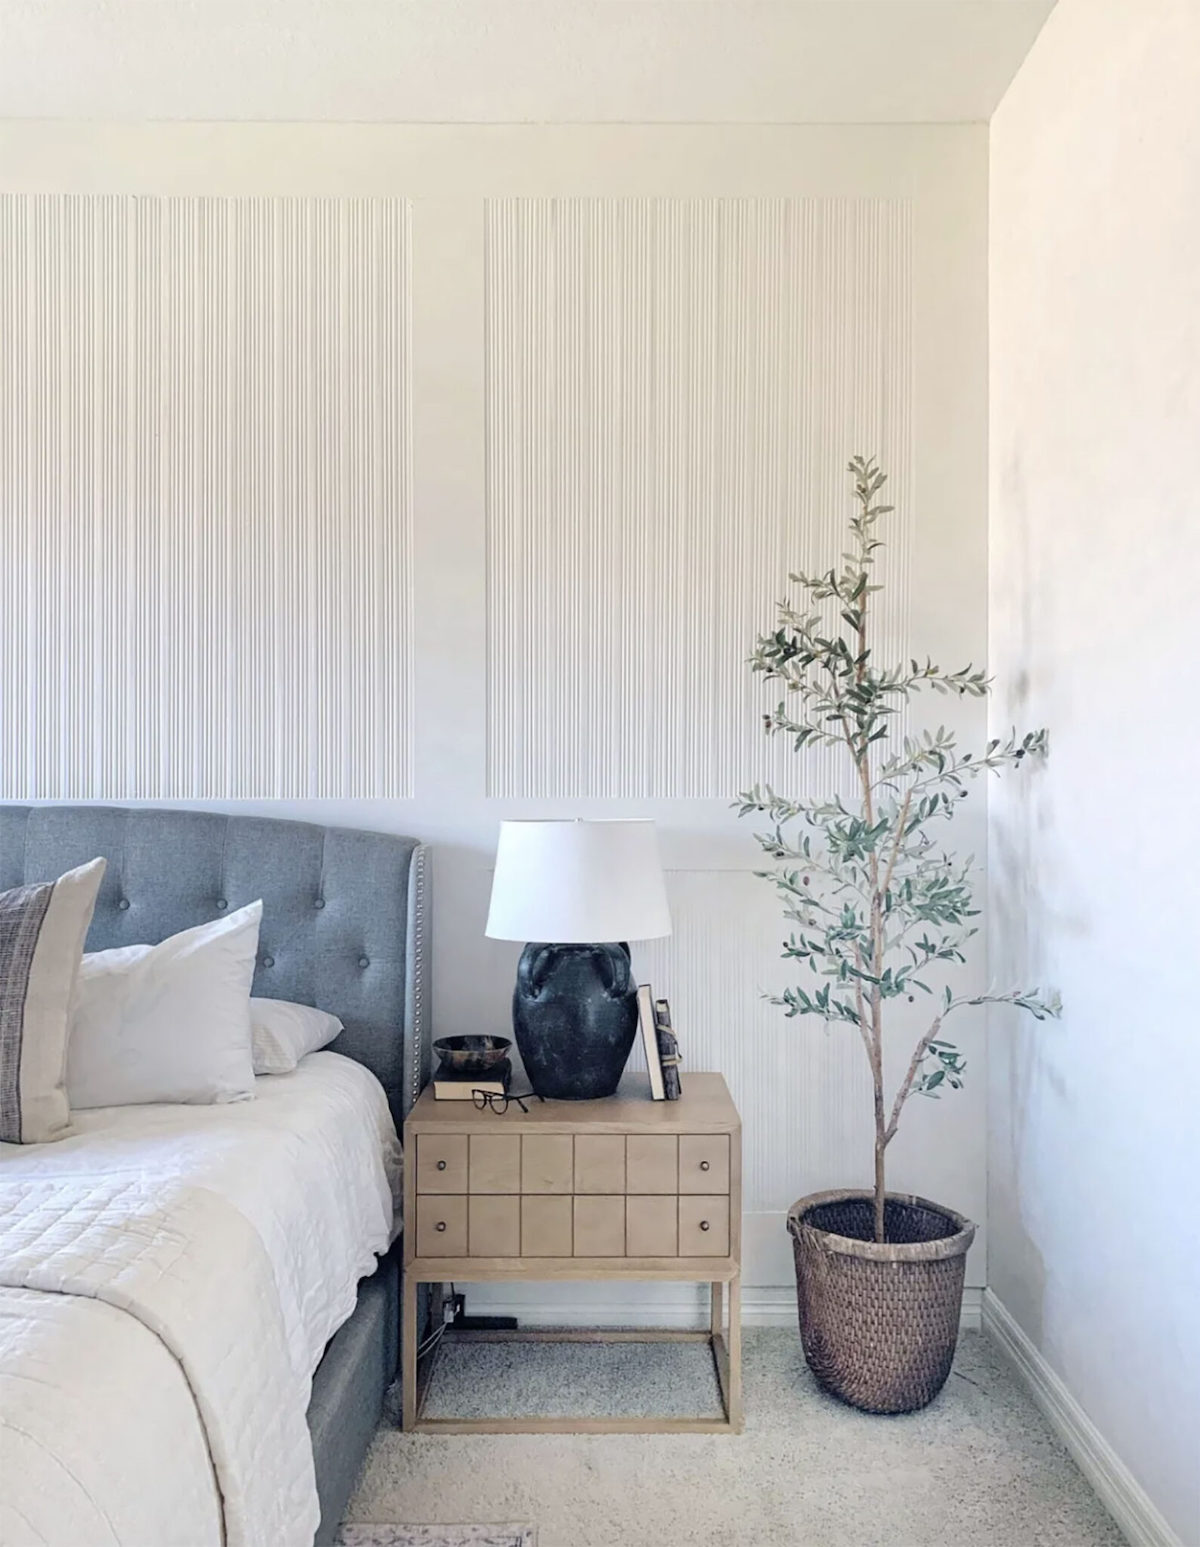 reeded wood accent wall